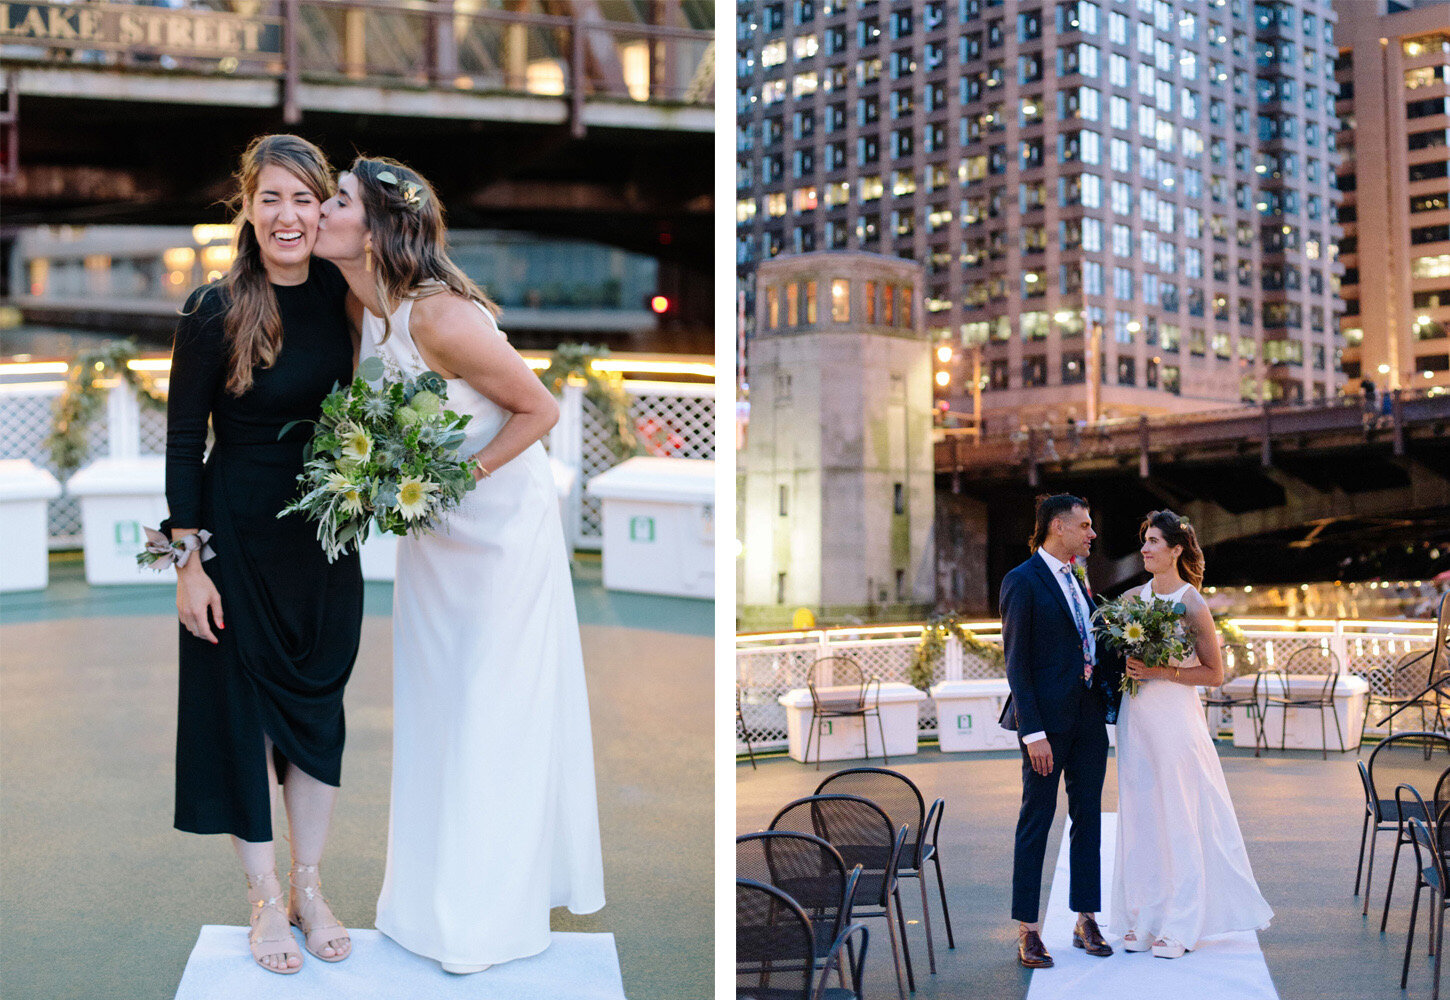 wedding-portraits-downtown-chicago-on-boat.jpg